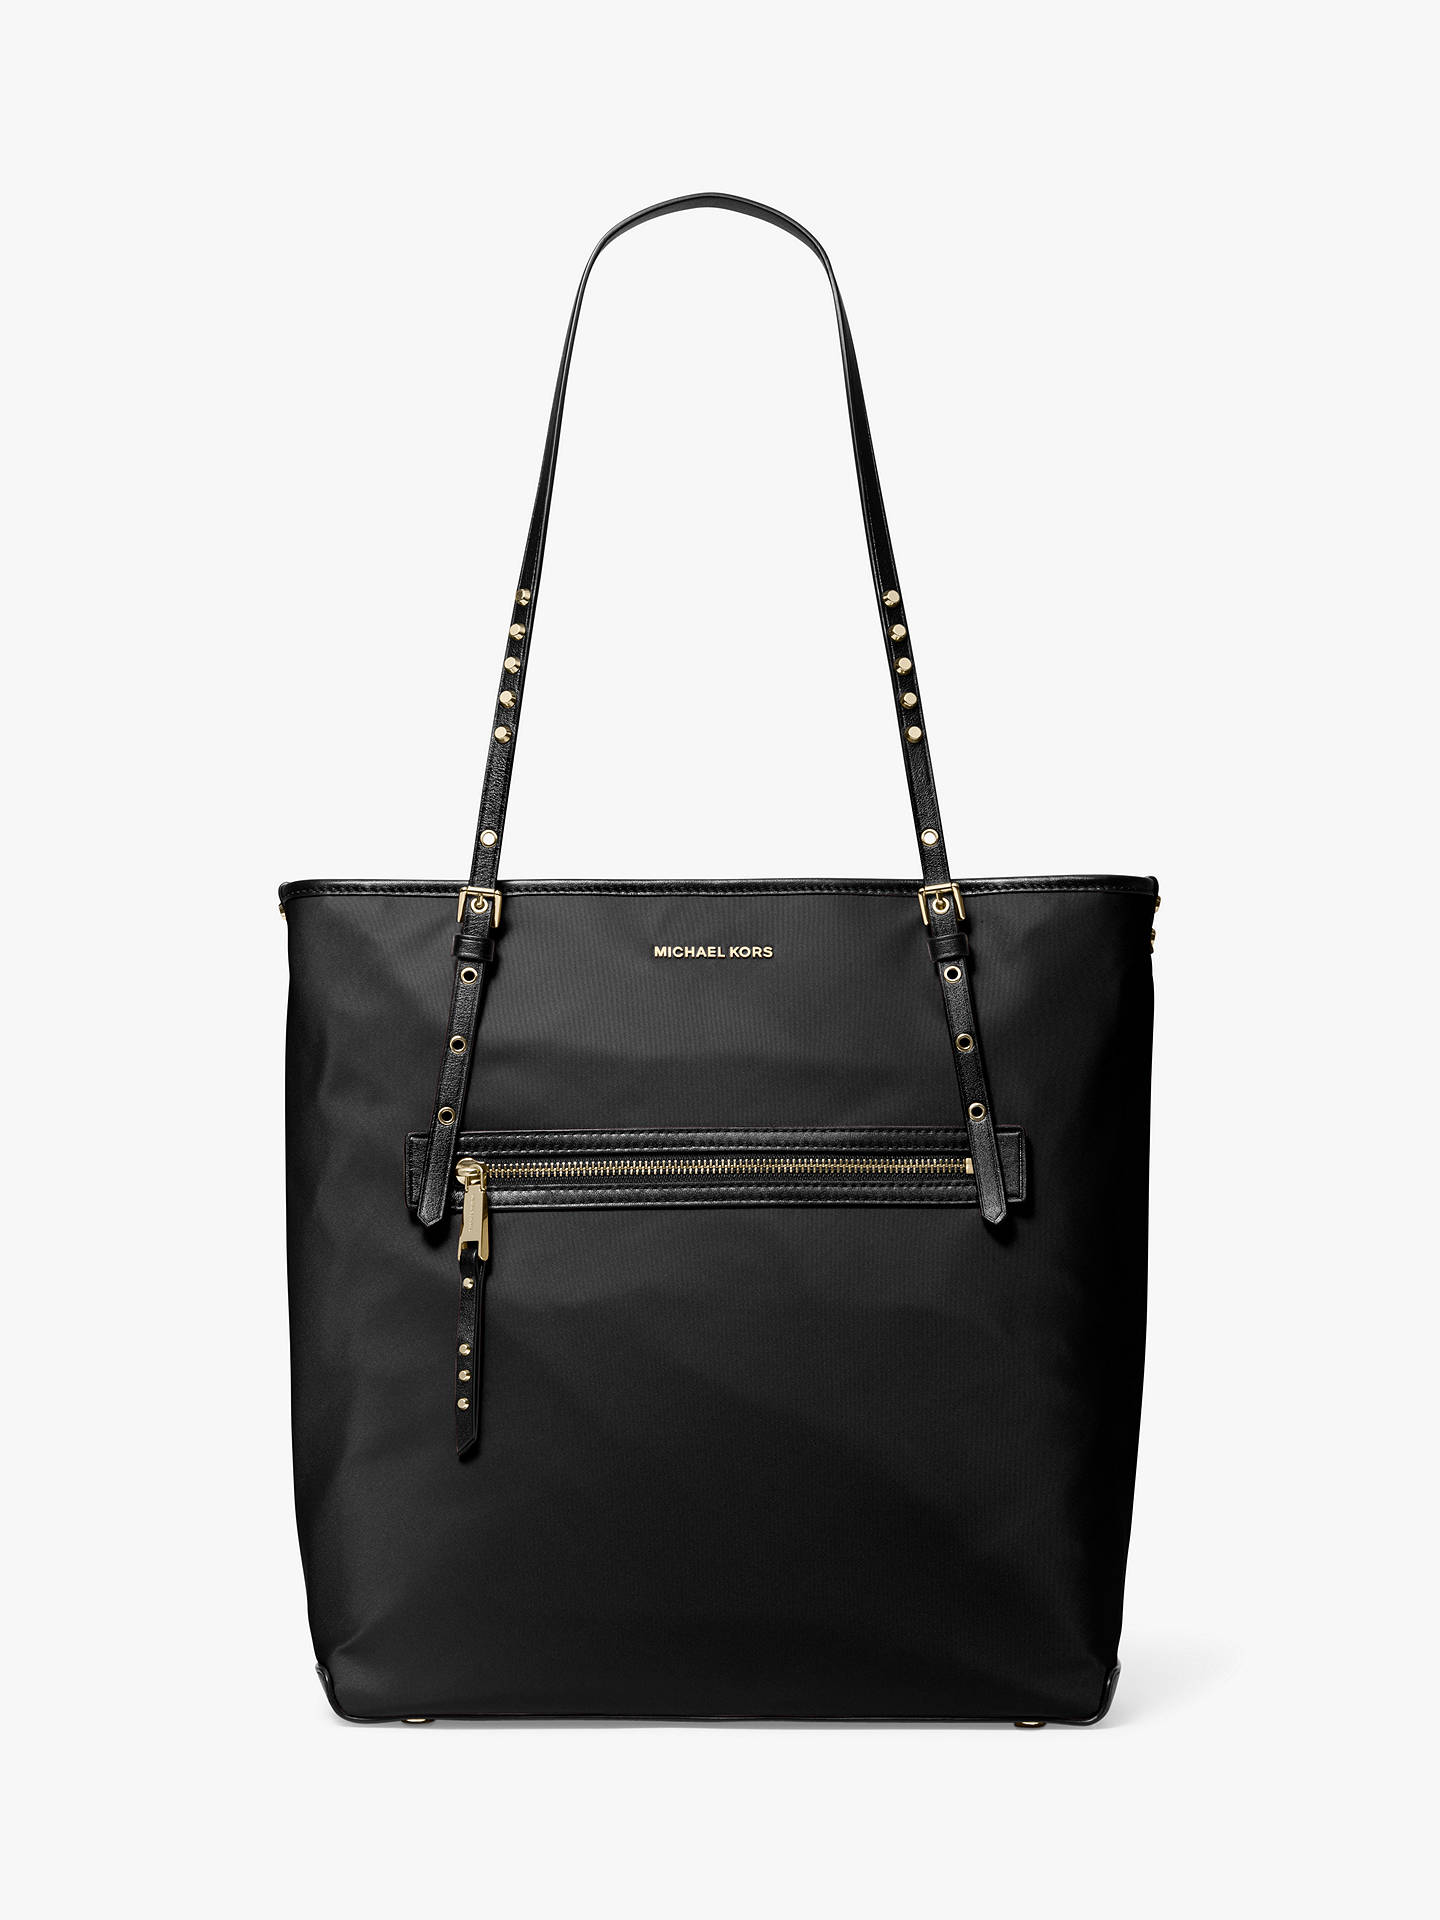 ec957874375adb Buy MICHAEL Michael Kors Leila Large Tote Bag, Black Online at  johnlewis.com ...